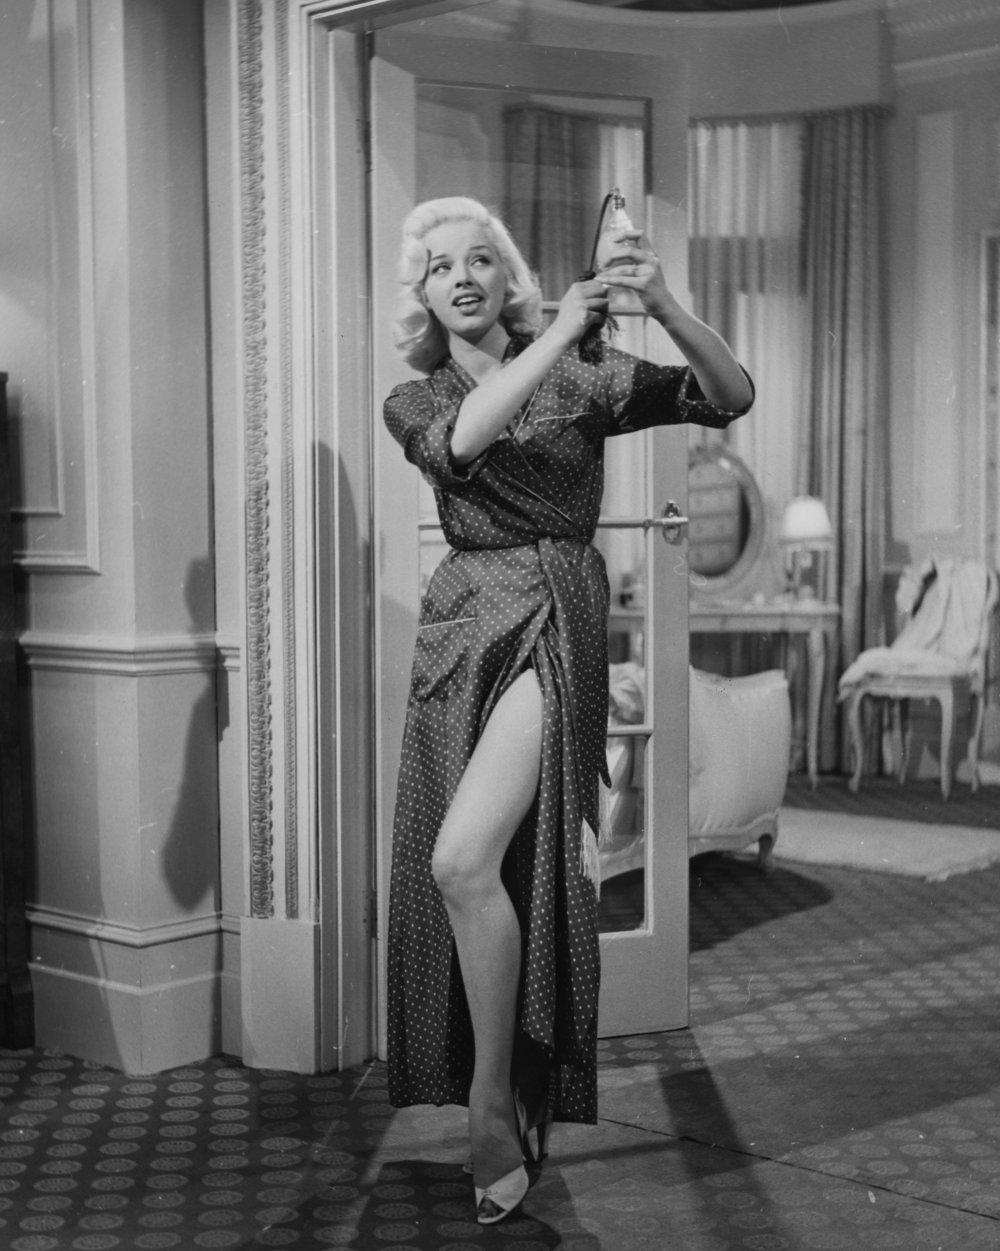 In Value for Money (1955), nightclub singer Diana Dors meets a newly-rich young man from Yorkshire and decides to have some fun with his money